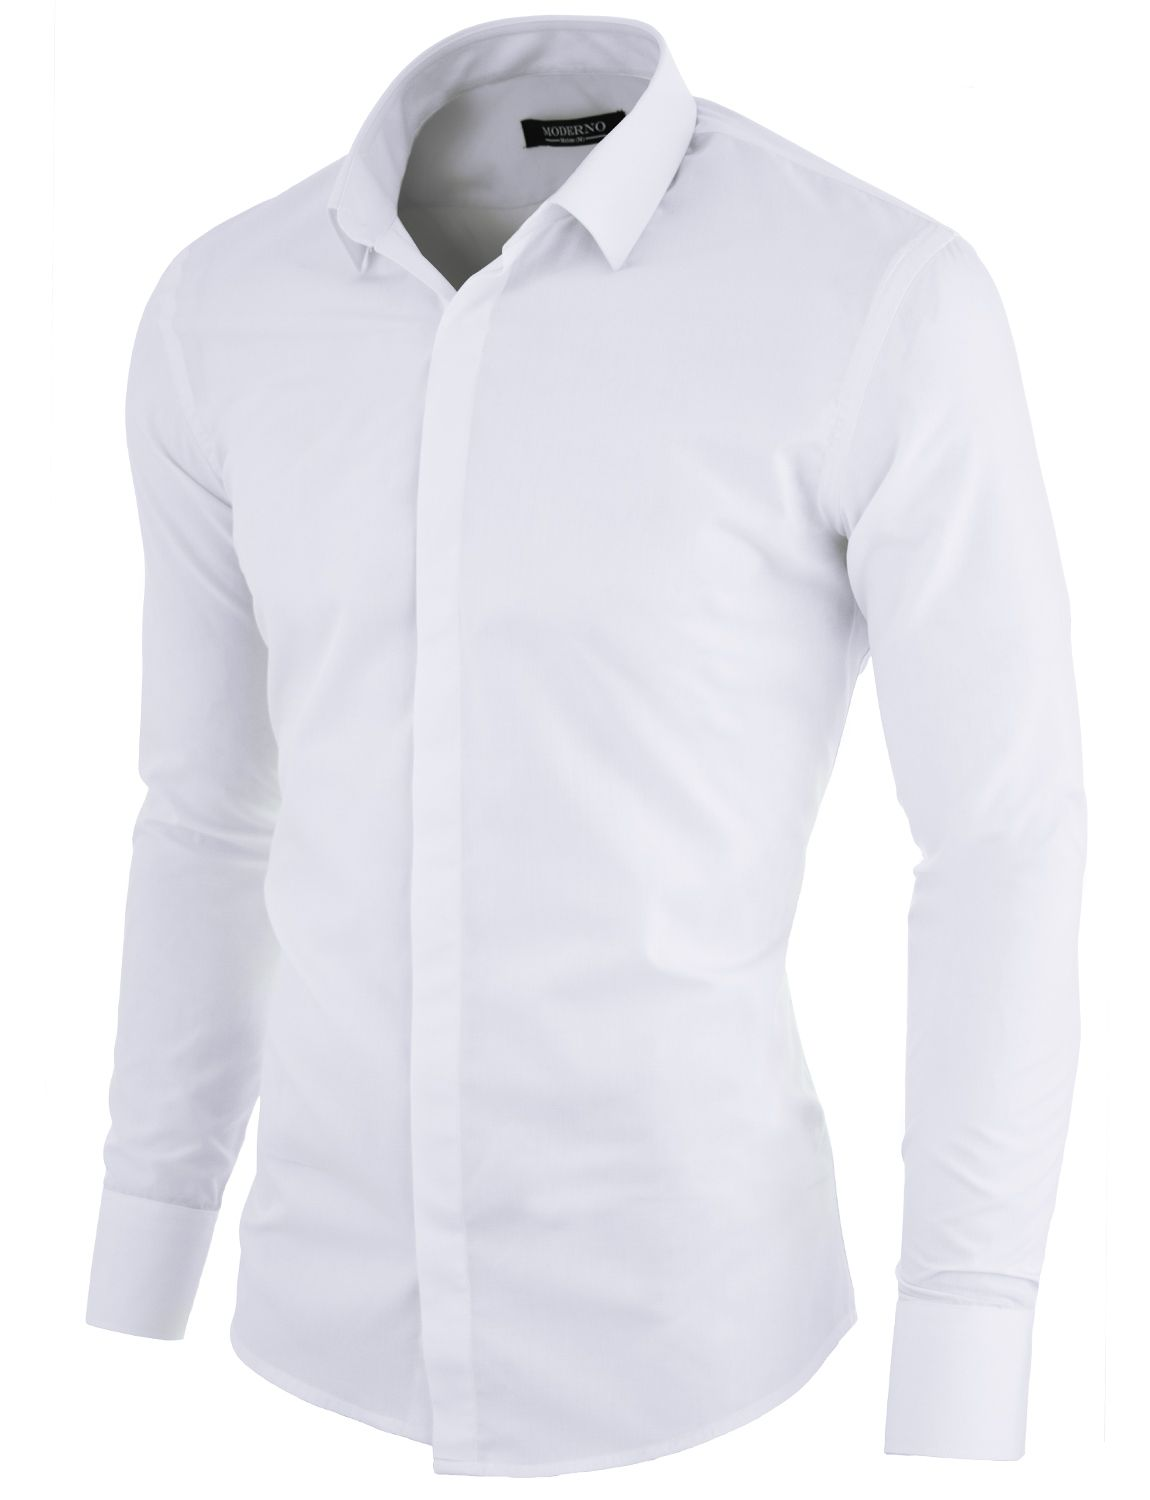 e7ac6032fcd MODERNO Slim Fit Mens Dress Shirt with Hidden Closer White. FREE shipping  worldwide! 30 days return policy